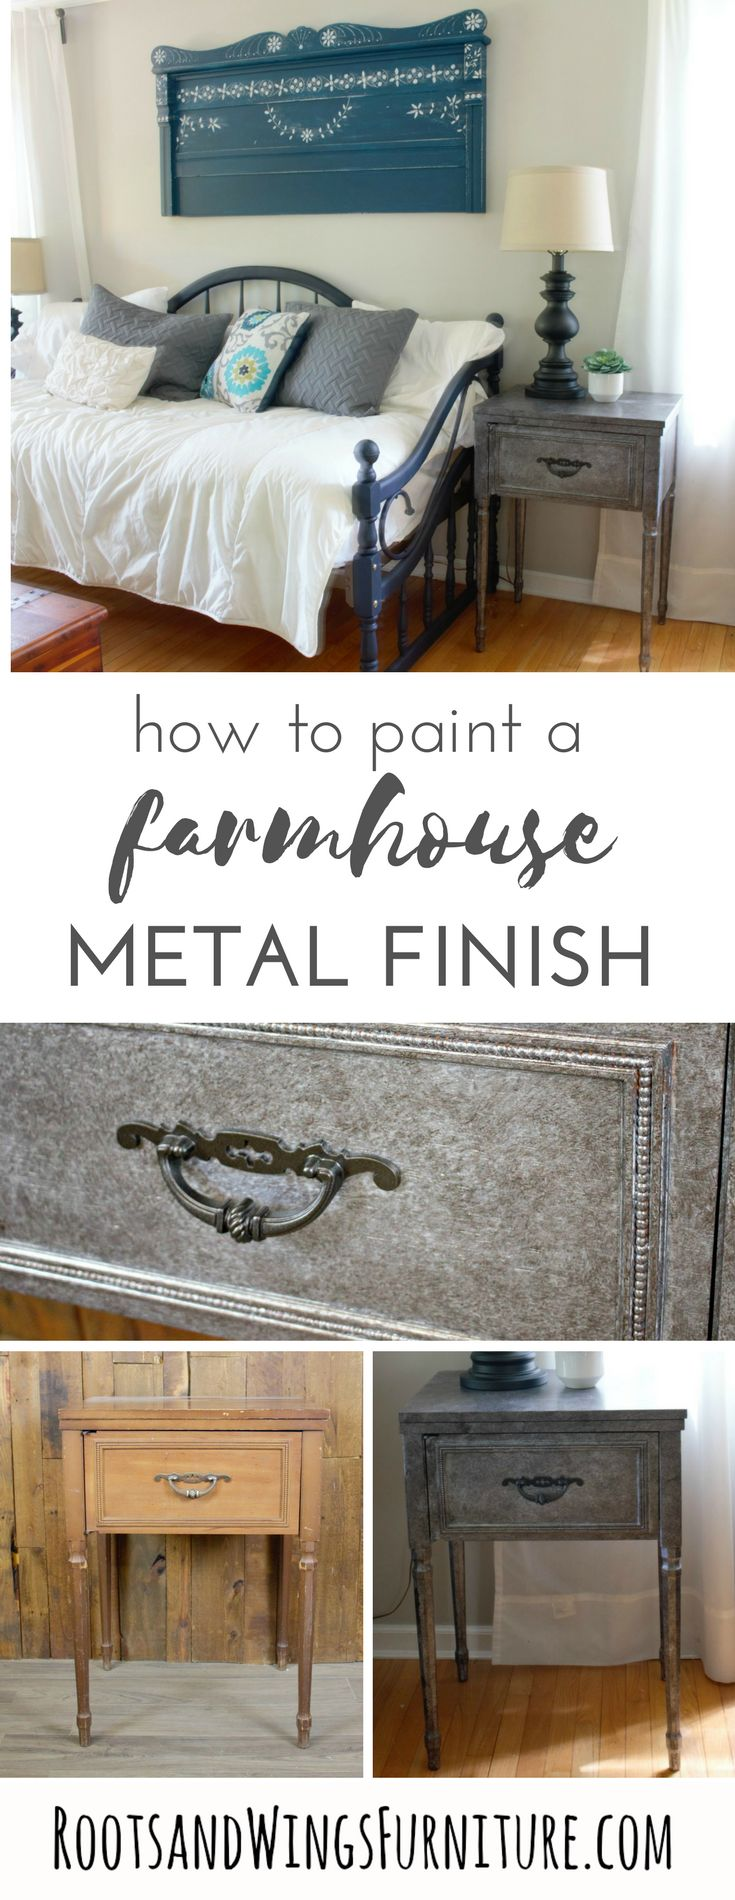 best painted furniture ideas images on pinterest  furniture  - now you can add your own visual interest with a showstopping metallicfurniture piece